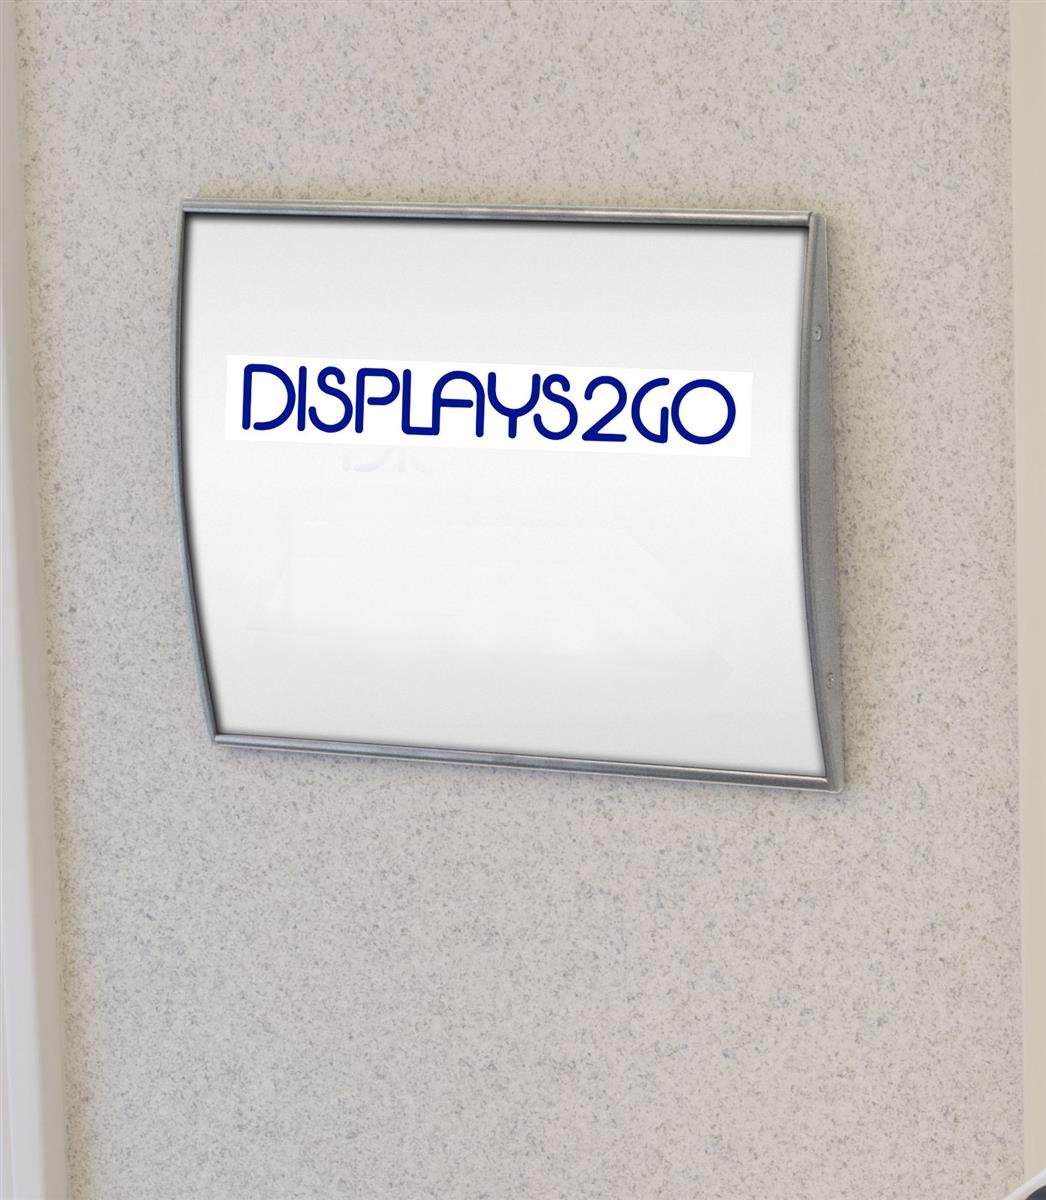 Displays2go Set of 2, Door Sign with Non-glare Lens for Displaying 8 1/2 x 11 Inches Graphics, Curved Name Plate Holder Mounts Vertically or Horizontally to a Wall, Silver, Aluminum (WCSSLV8511)